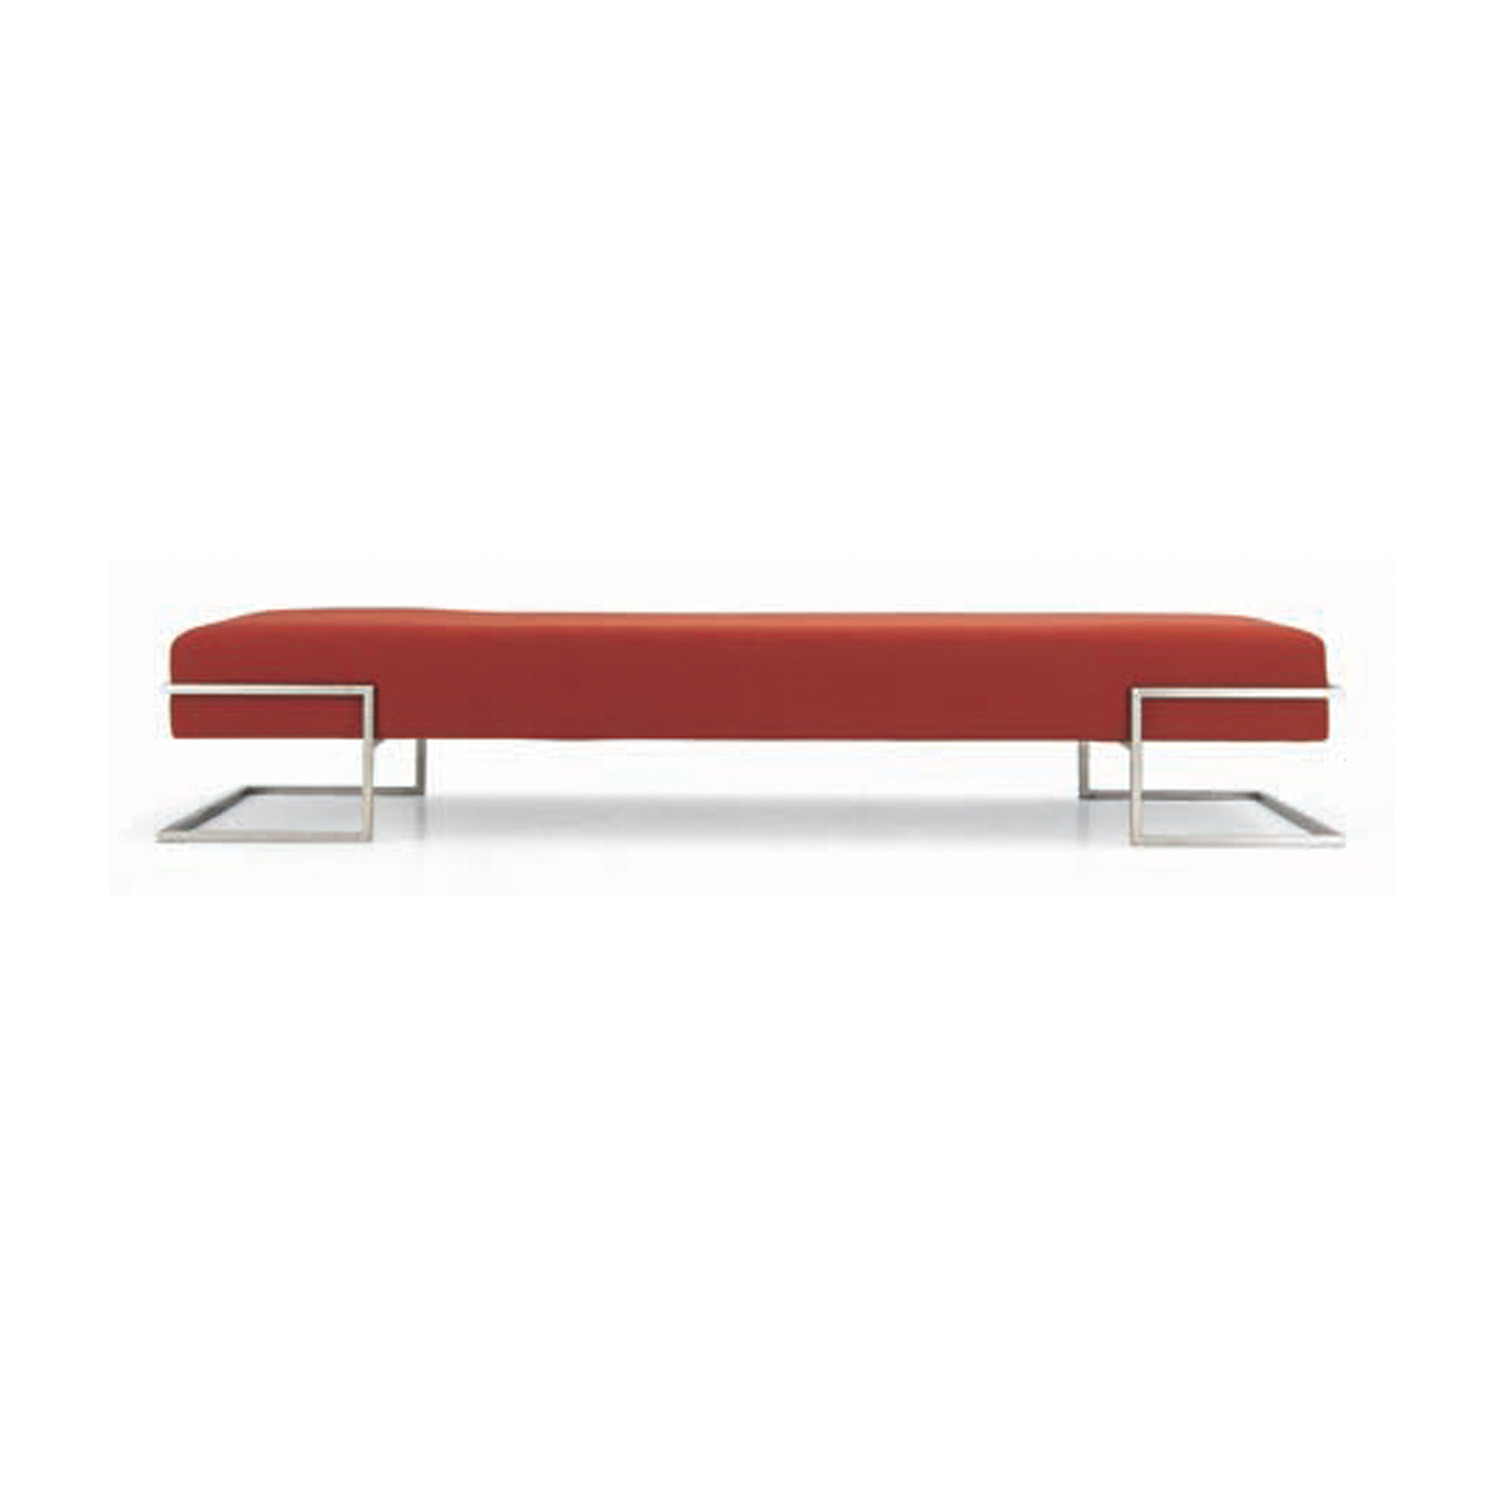 Orizzonte Bench from Rossin